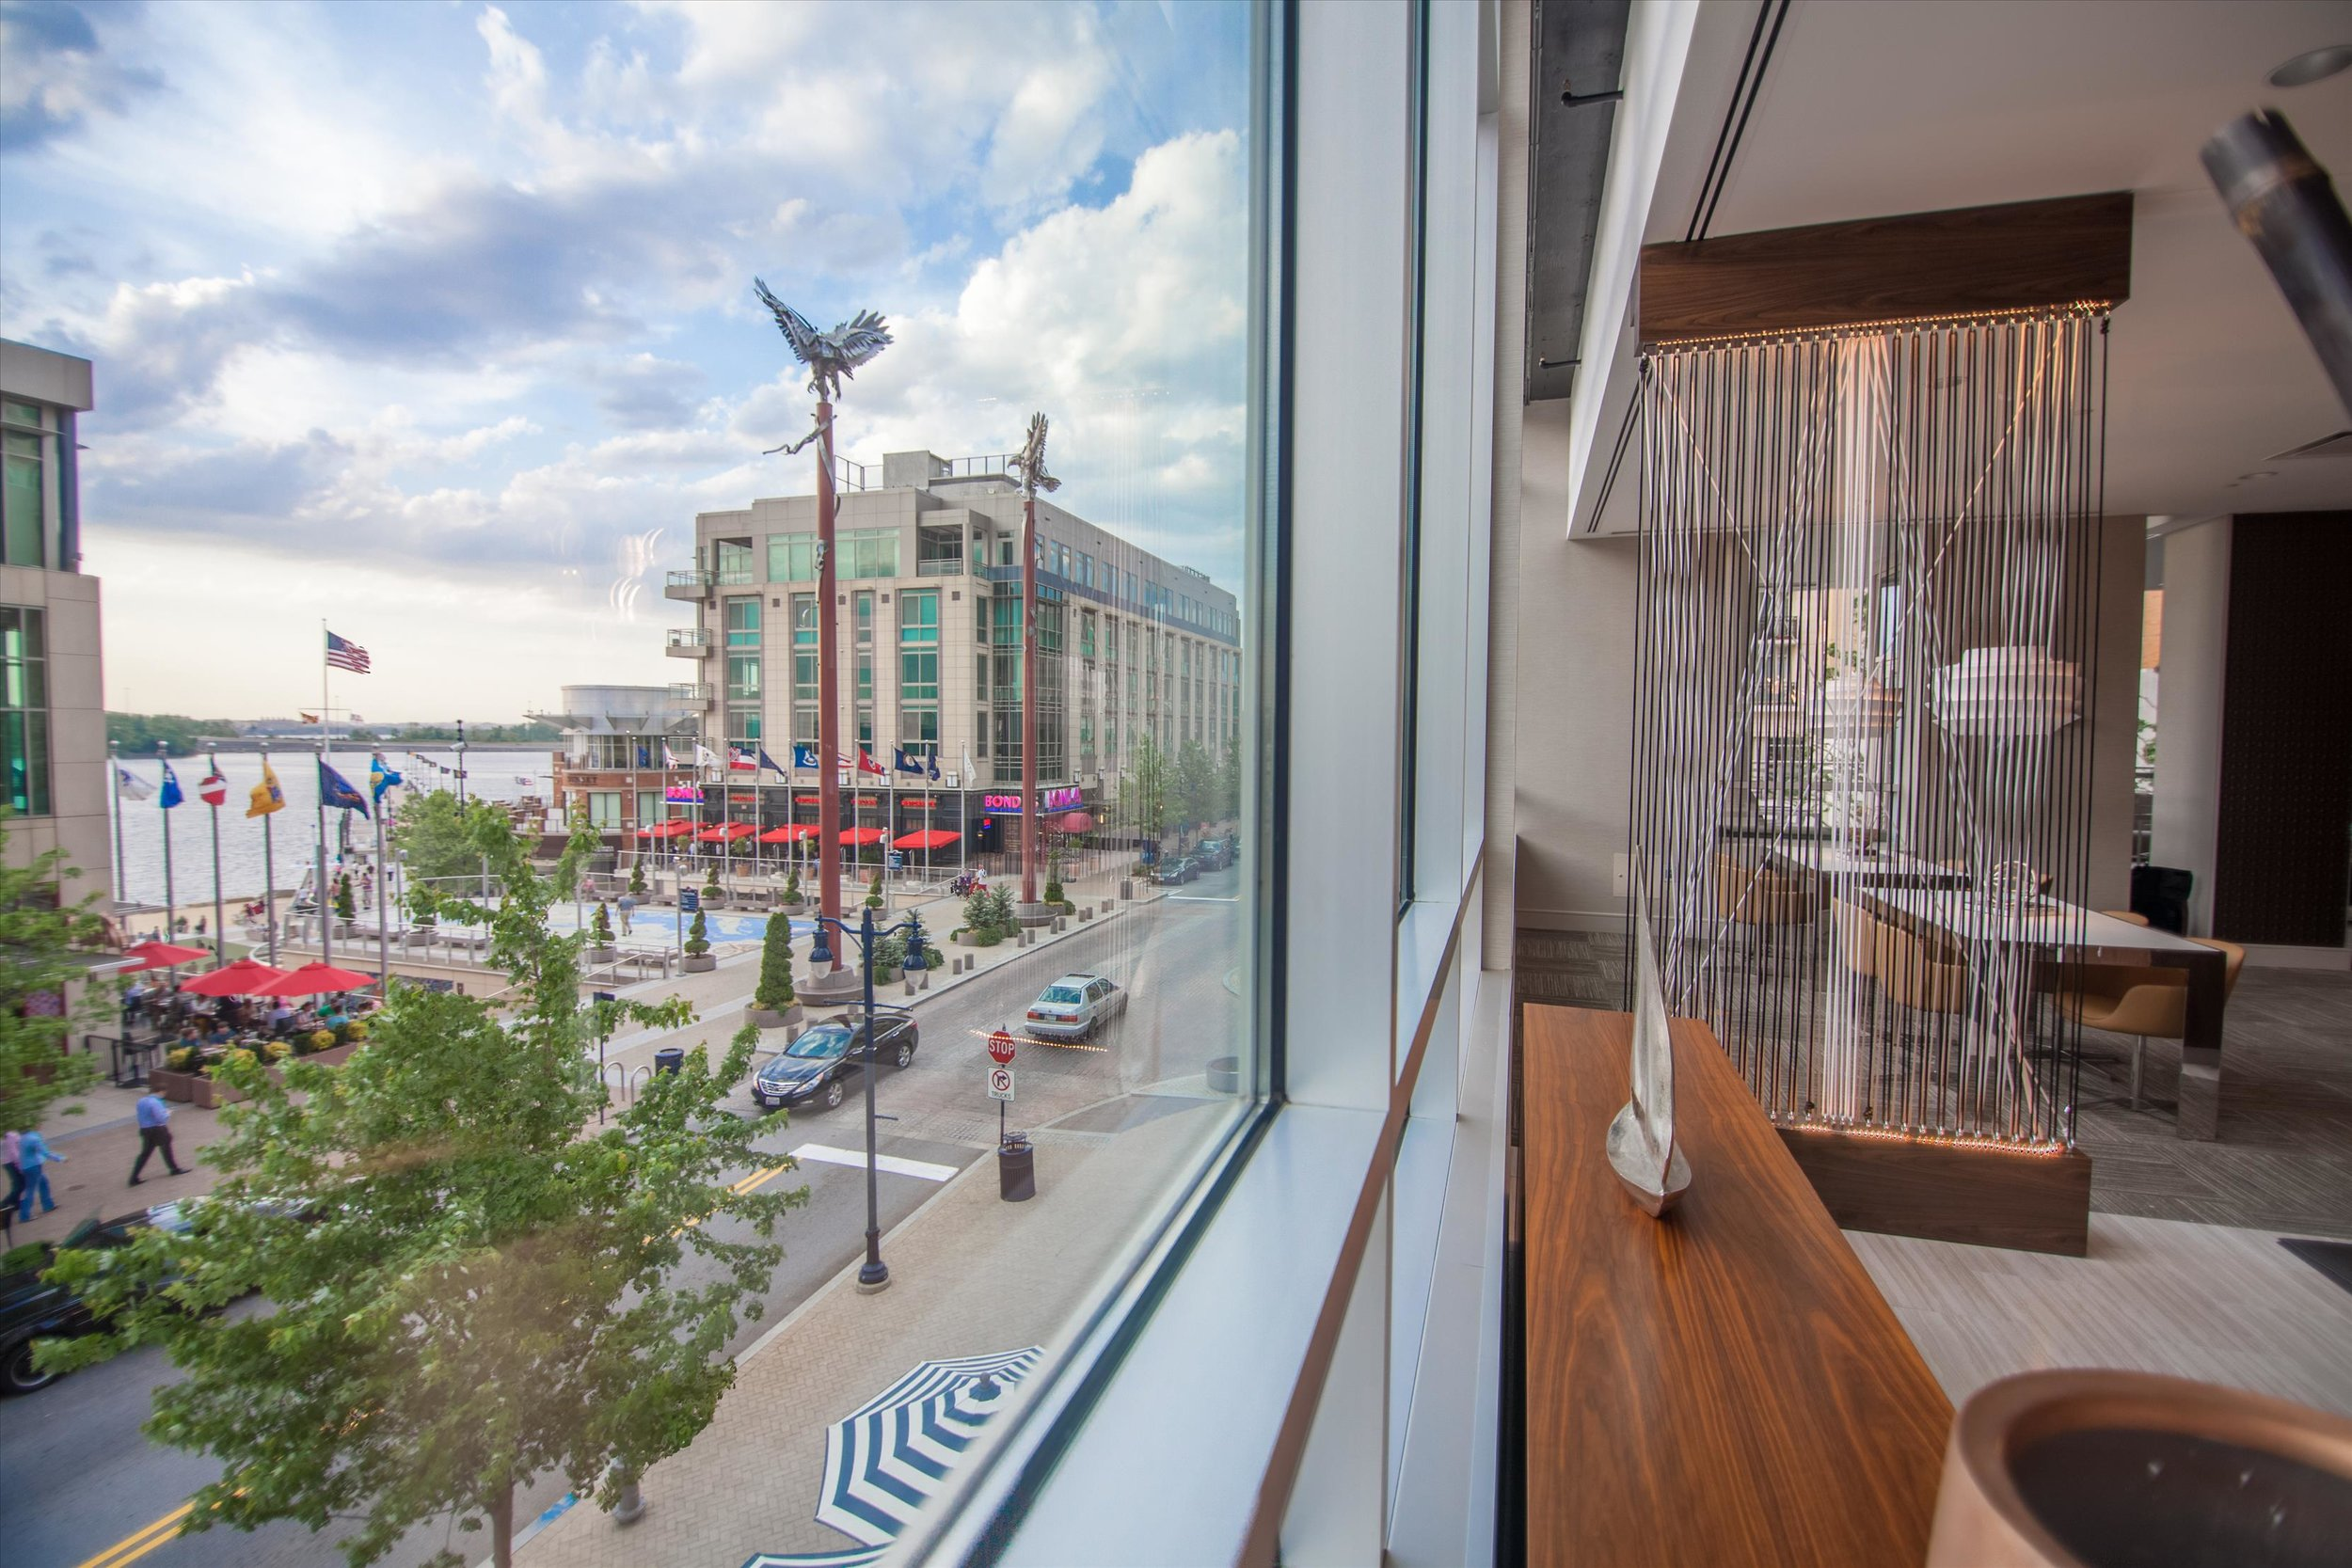 AC NATIONAL HARBOR - Curated by Indiewalls